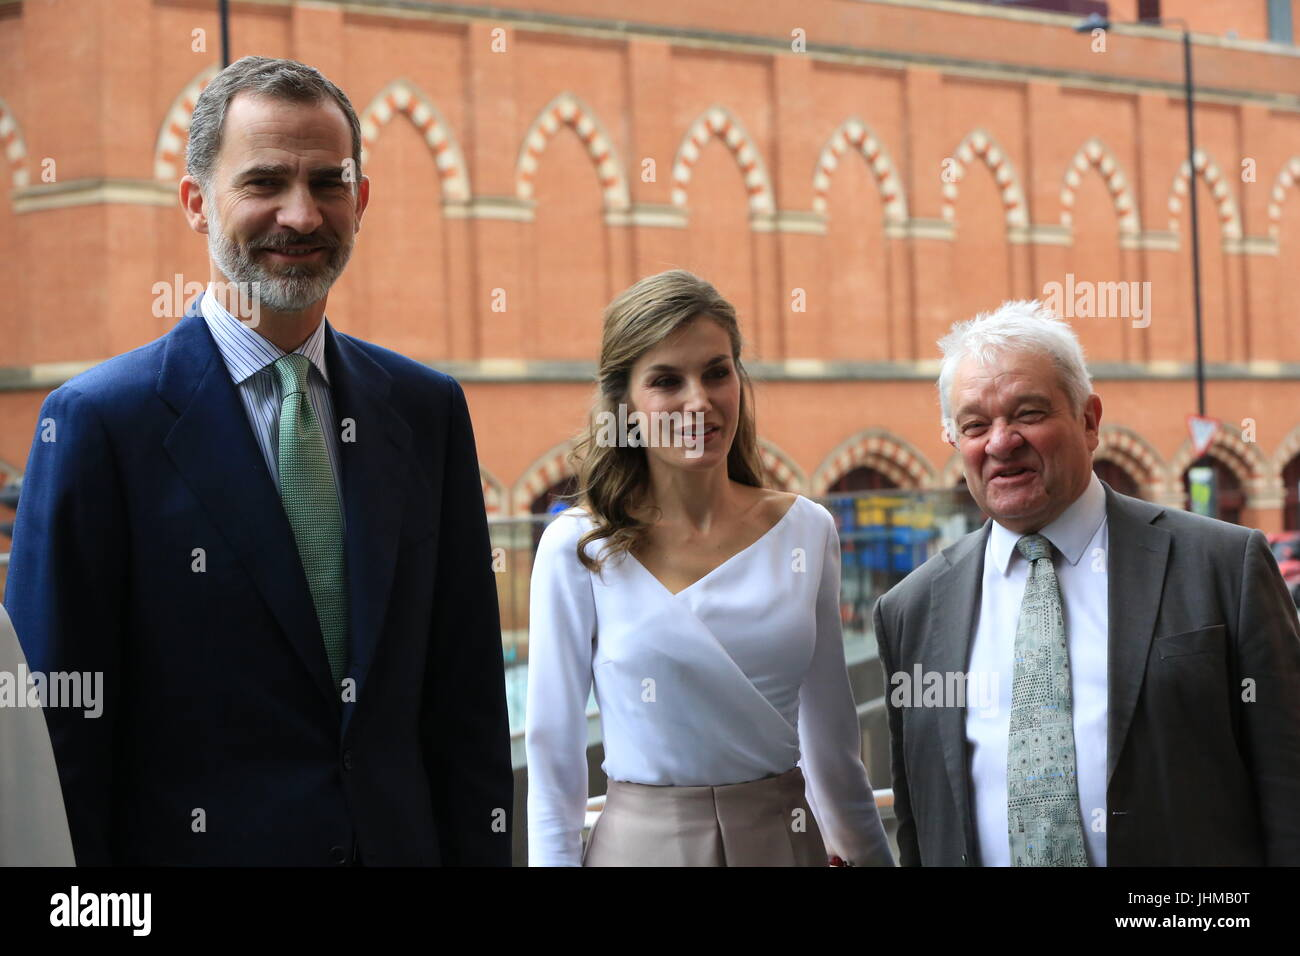 King Felipe Vi Of Spain And His Wife Queen Letizia Accompanied By